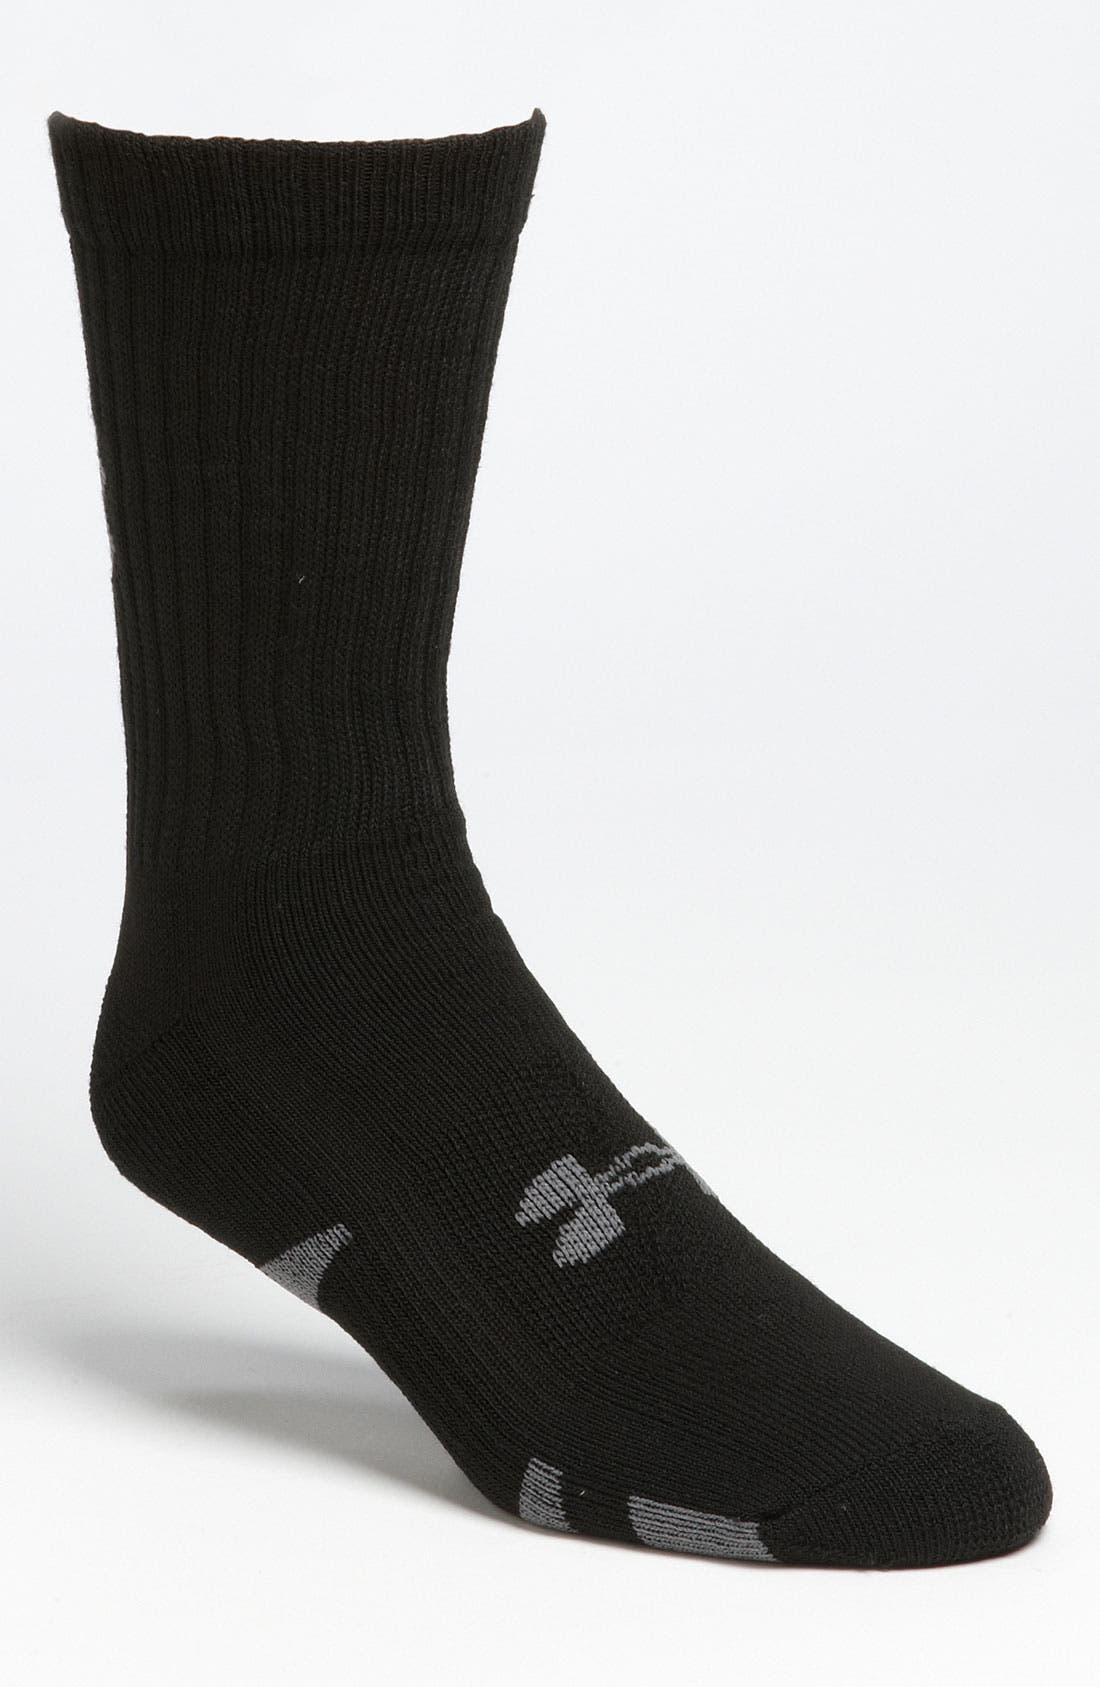 Main Image - Under Armour HeatGear® Crew Socks (4-Pack)